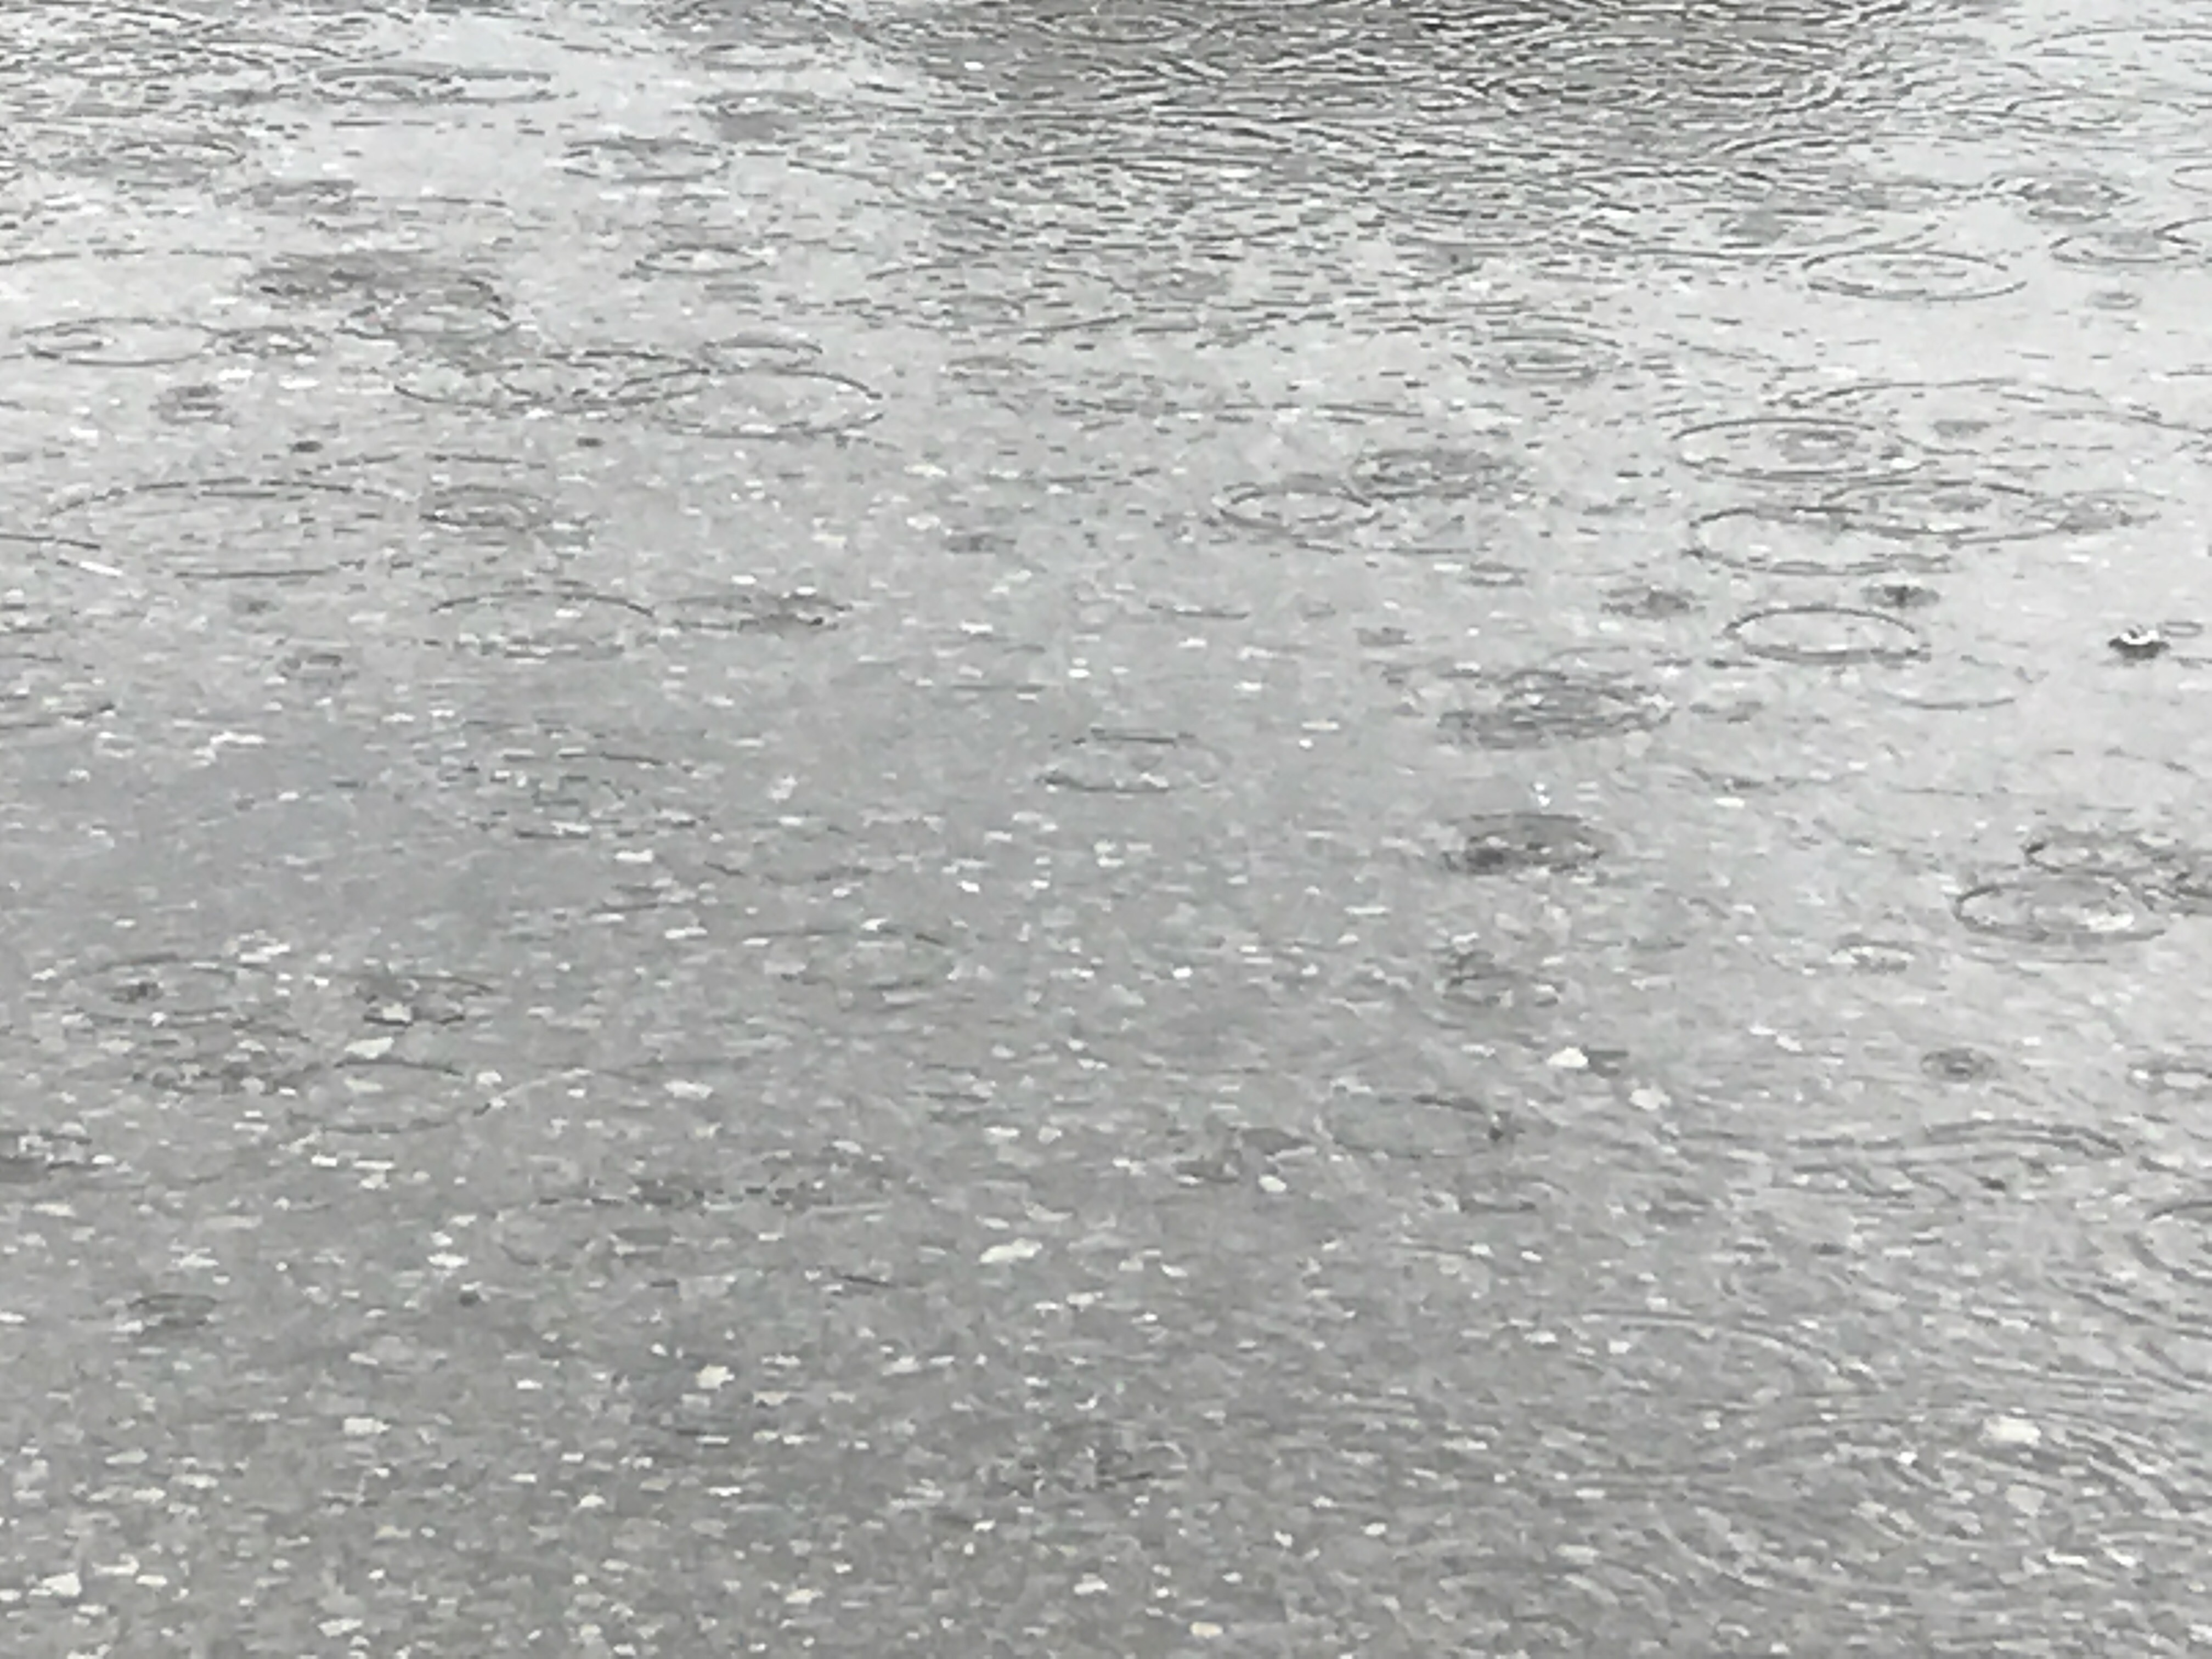 Roller skating rink etobicoke - It S Pouring So Tonight S Practice Is Cancelled